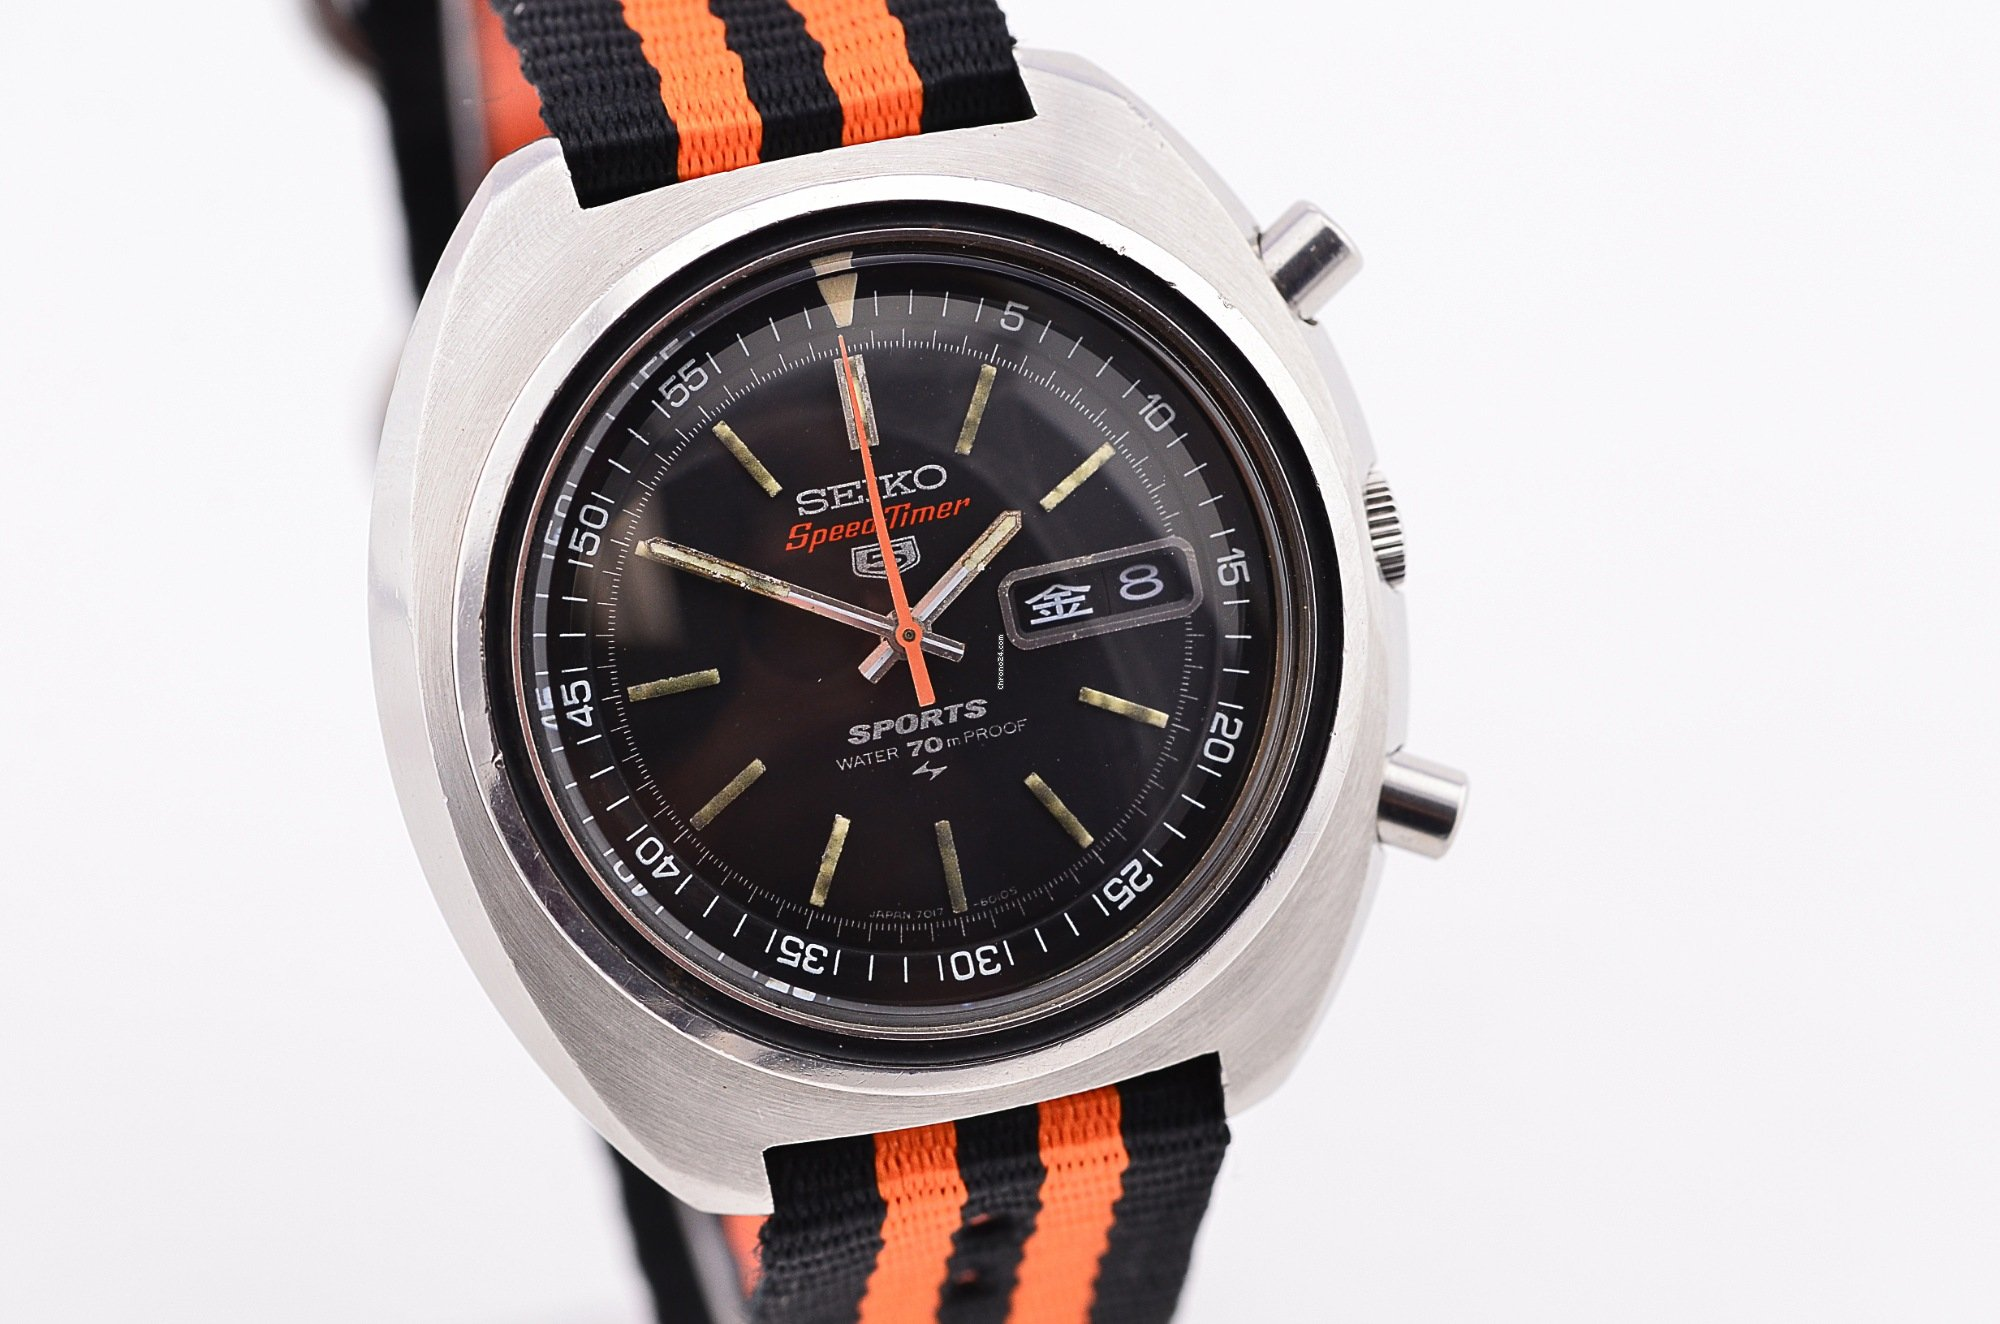 98fd43ee9 Seiko 5 Sports SpeedTimer Chronograph Watch 7017-6010 JDM Date for ...